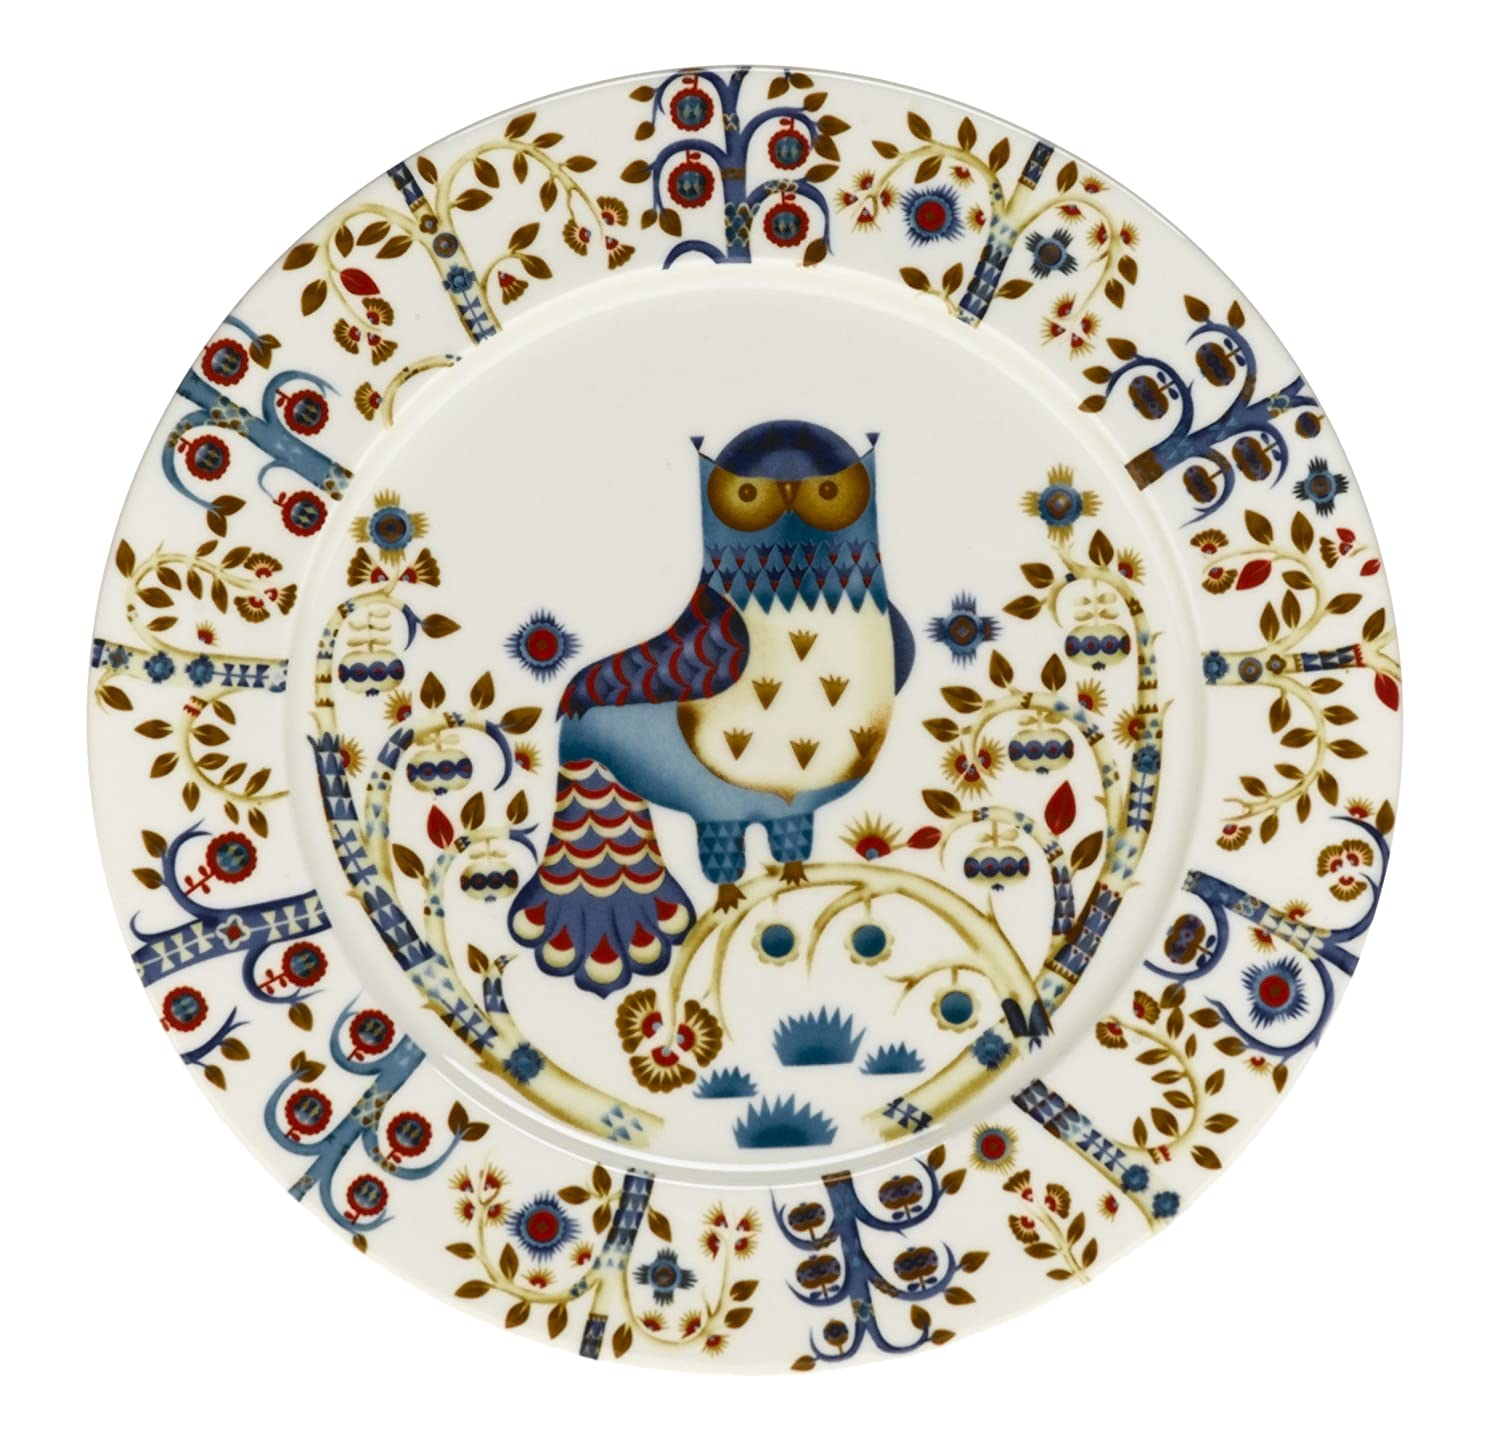 Amazon.com | Iittala Taika Dinner Plate White 11-3/4-Inch Dinner Plates  sc 1 st  Amazon.com & Amazon.com | Iittala Taika Dinner Plate White 11-3/4-Inch: Dinner ...